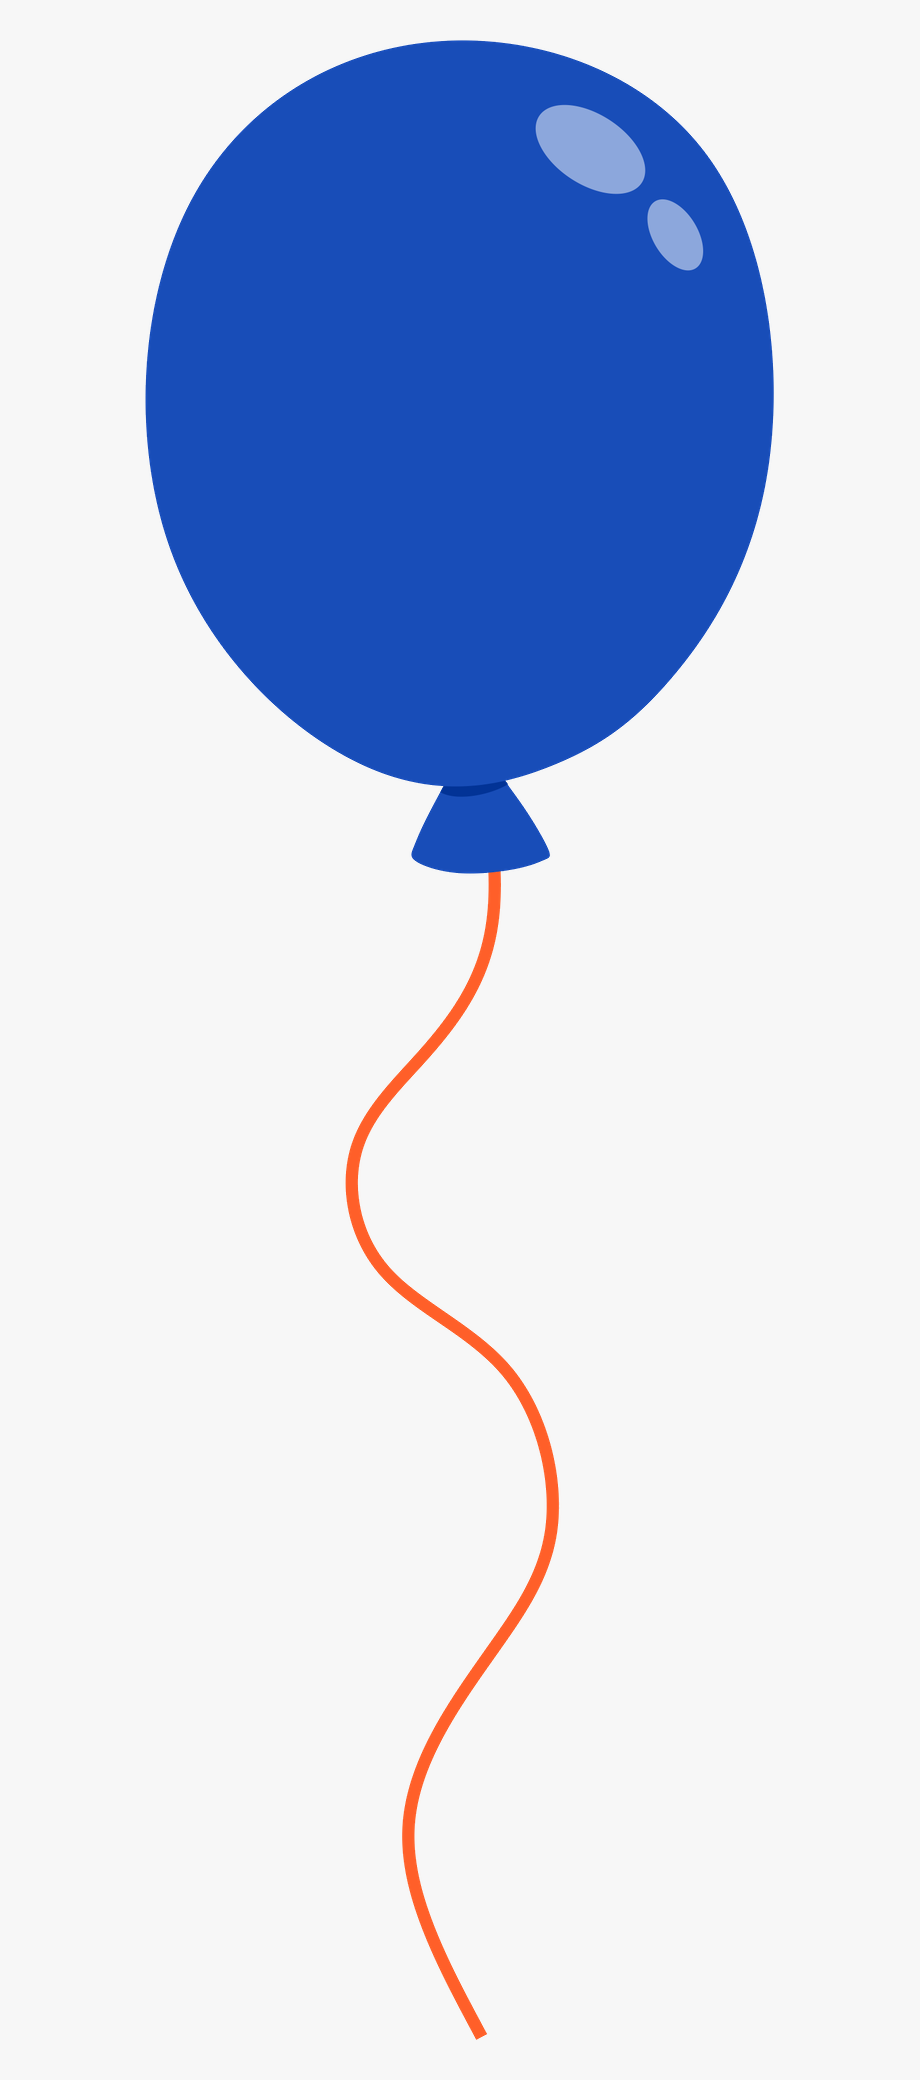 Blue orange. And balloon clipart free